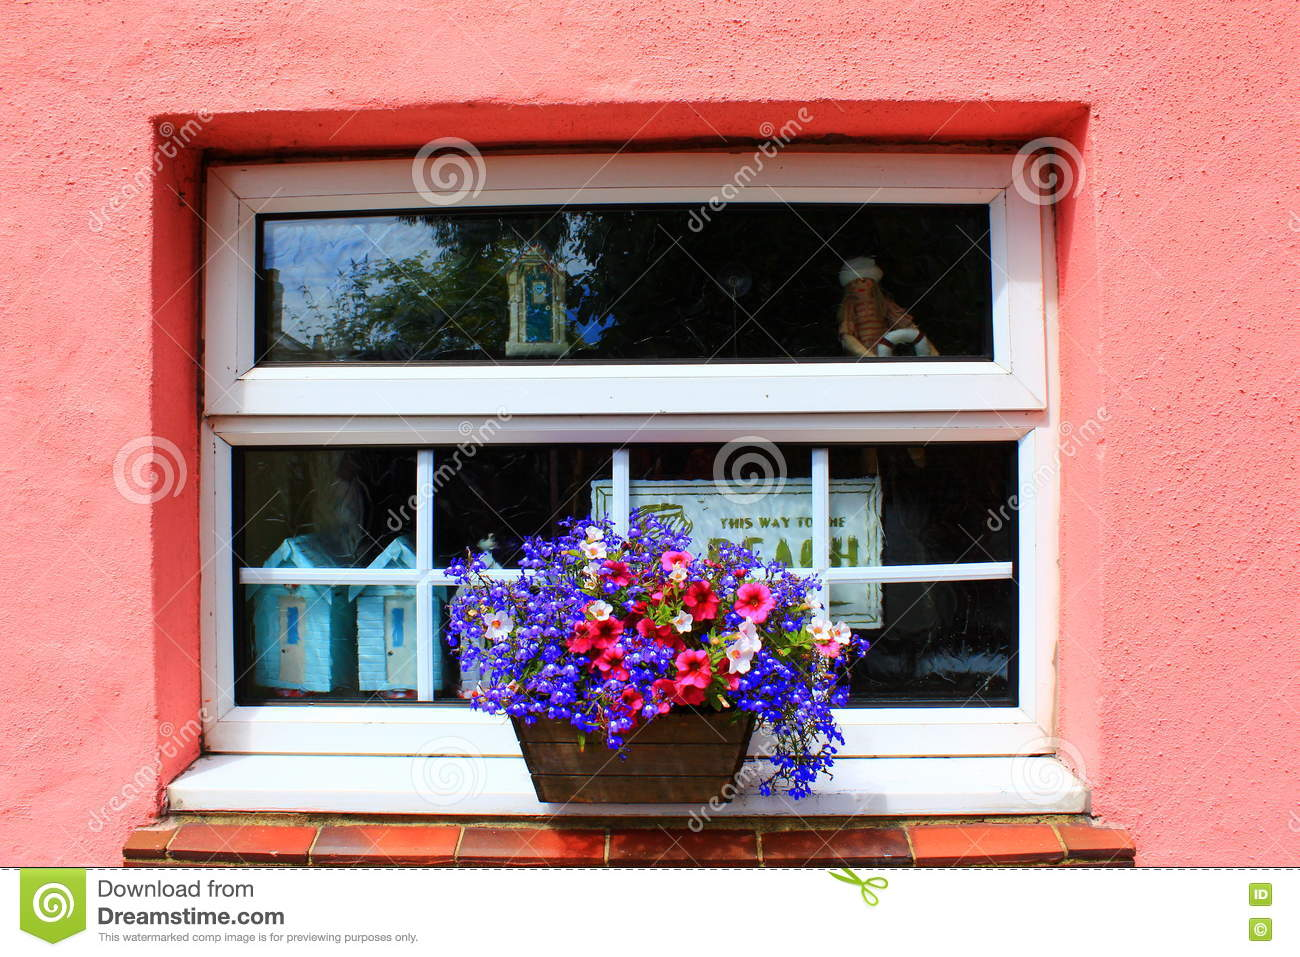 pink house window decoration stock photo - image: 77932797